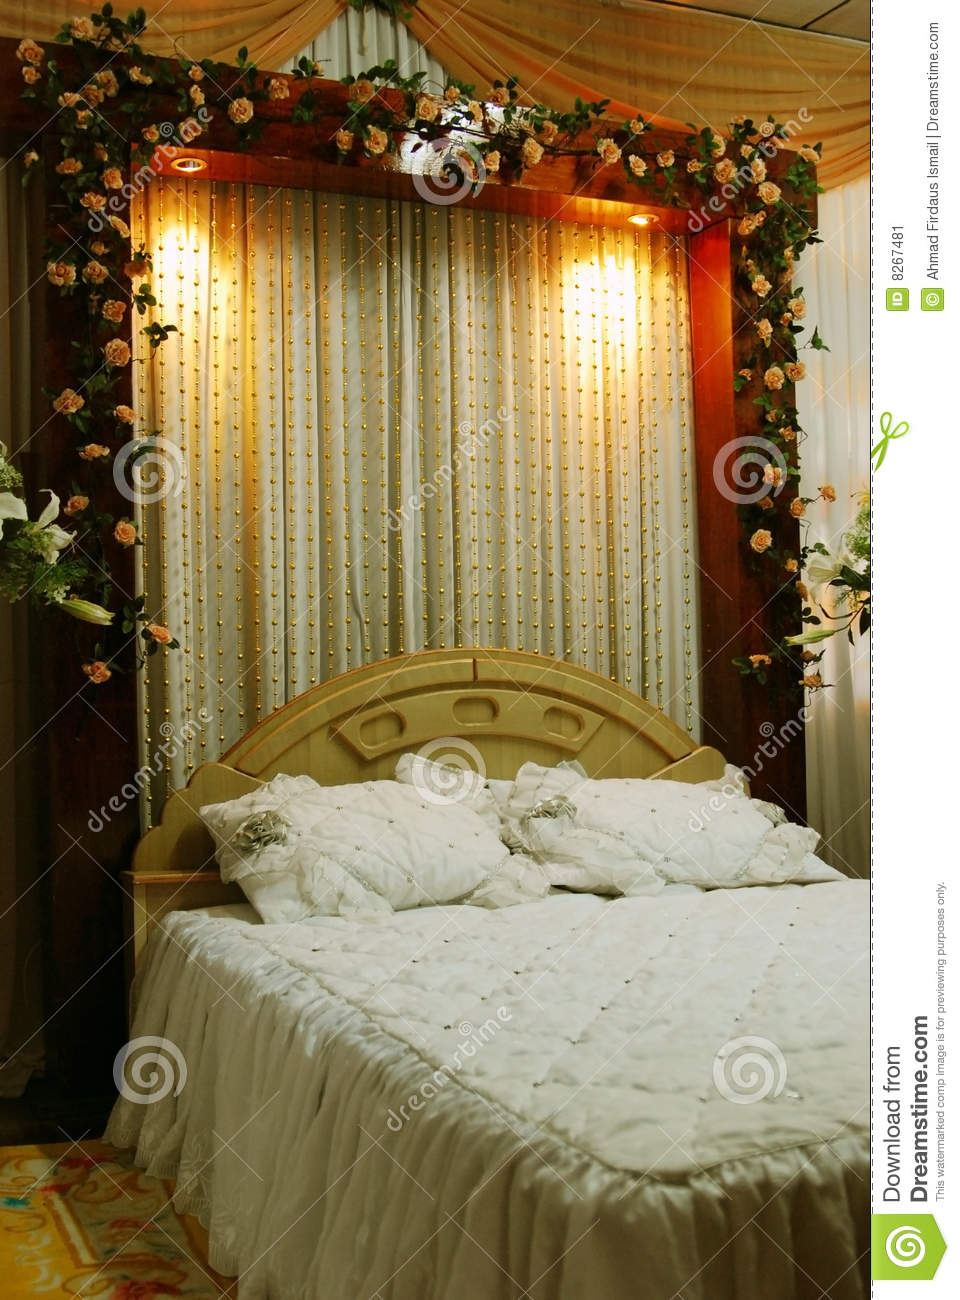 Couple room decoration - Wedding Bed Decoration Stock Image Image 8267481